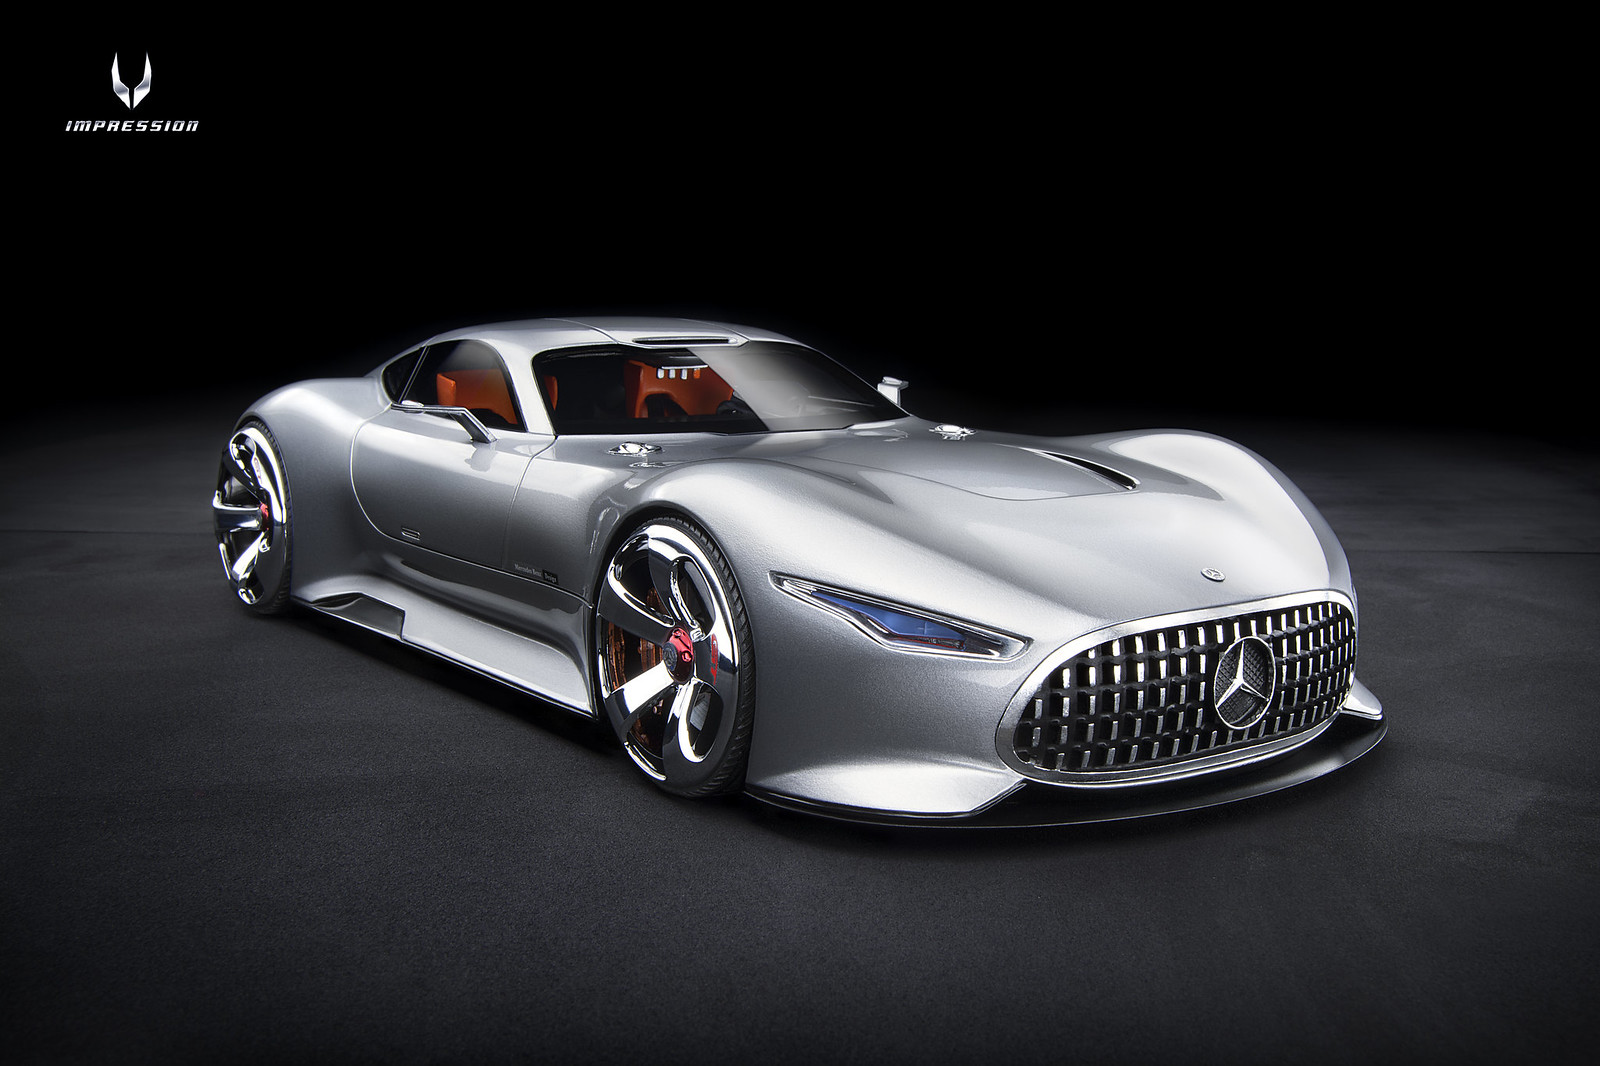 Mercedes benz amg vision gran turismo model 777 for Mercedes benz amg vision